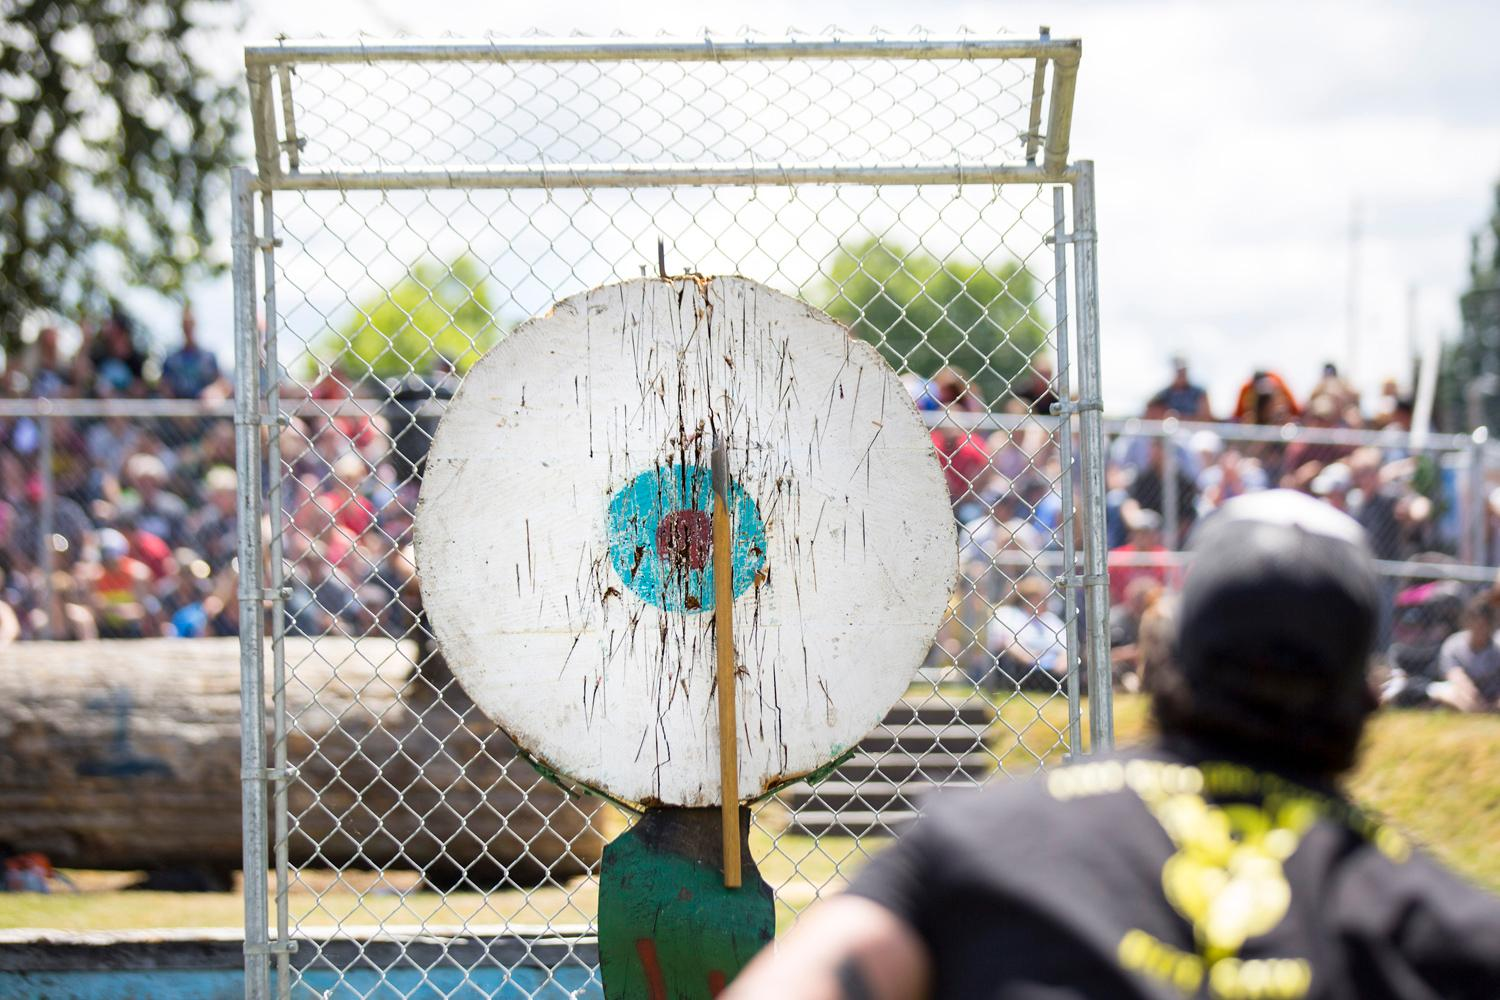 The 45th Annual Buckley Log Show took place over the weekend of June 23rd and 24th, with over 70 loggers competing in log bucking, log climb, axe throwing, and more! The entire community got together around this long standing tradition, and it was certainly a site to see. (Image: Sy Bean / Seattle Refined)